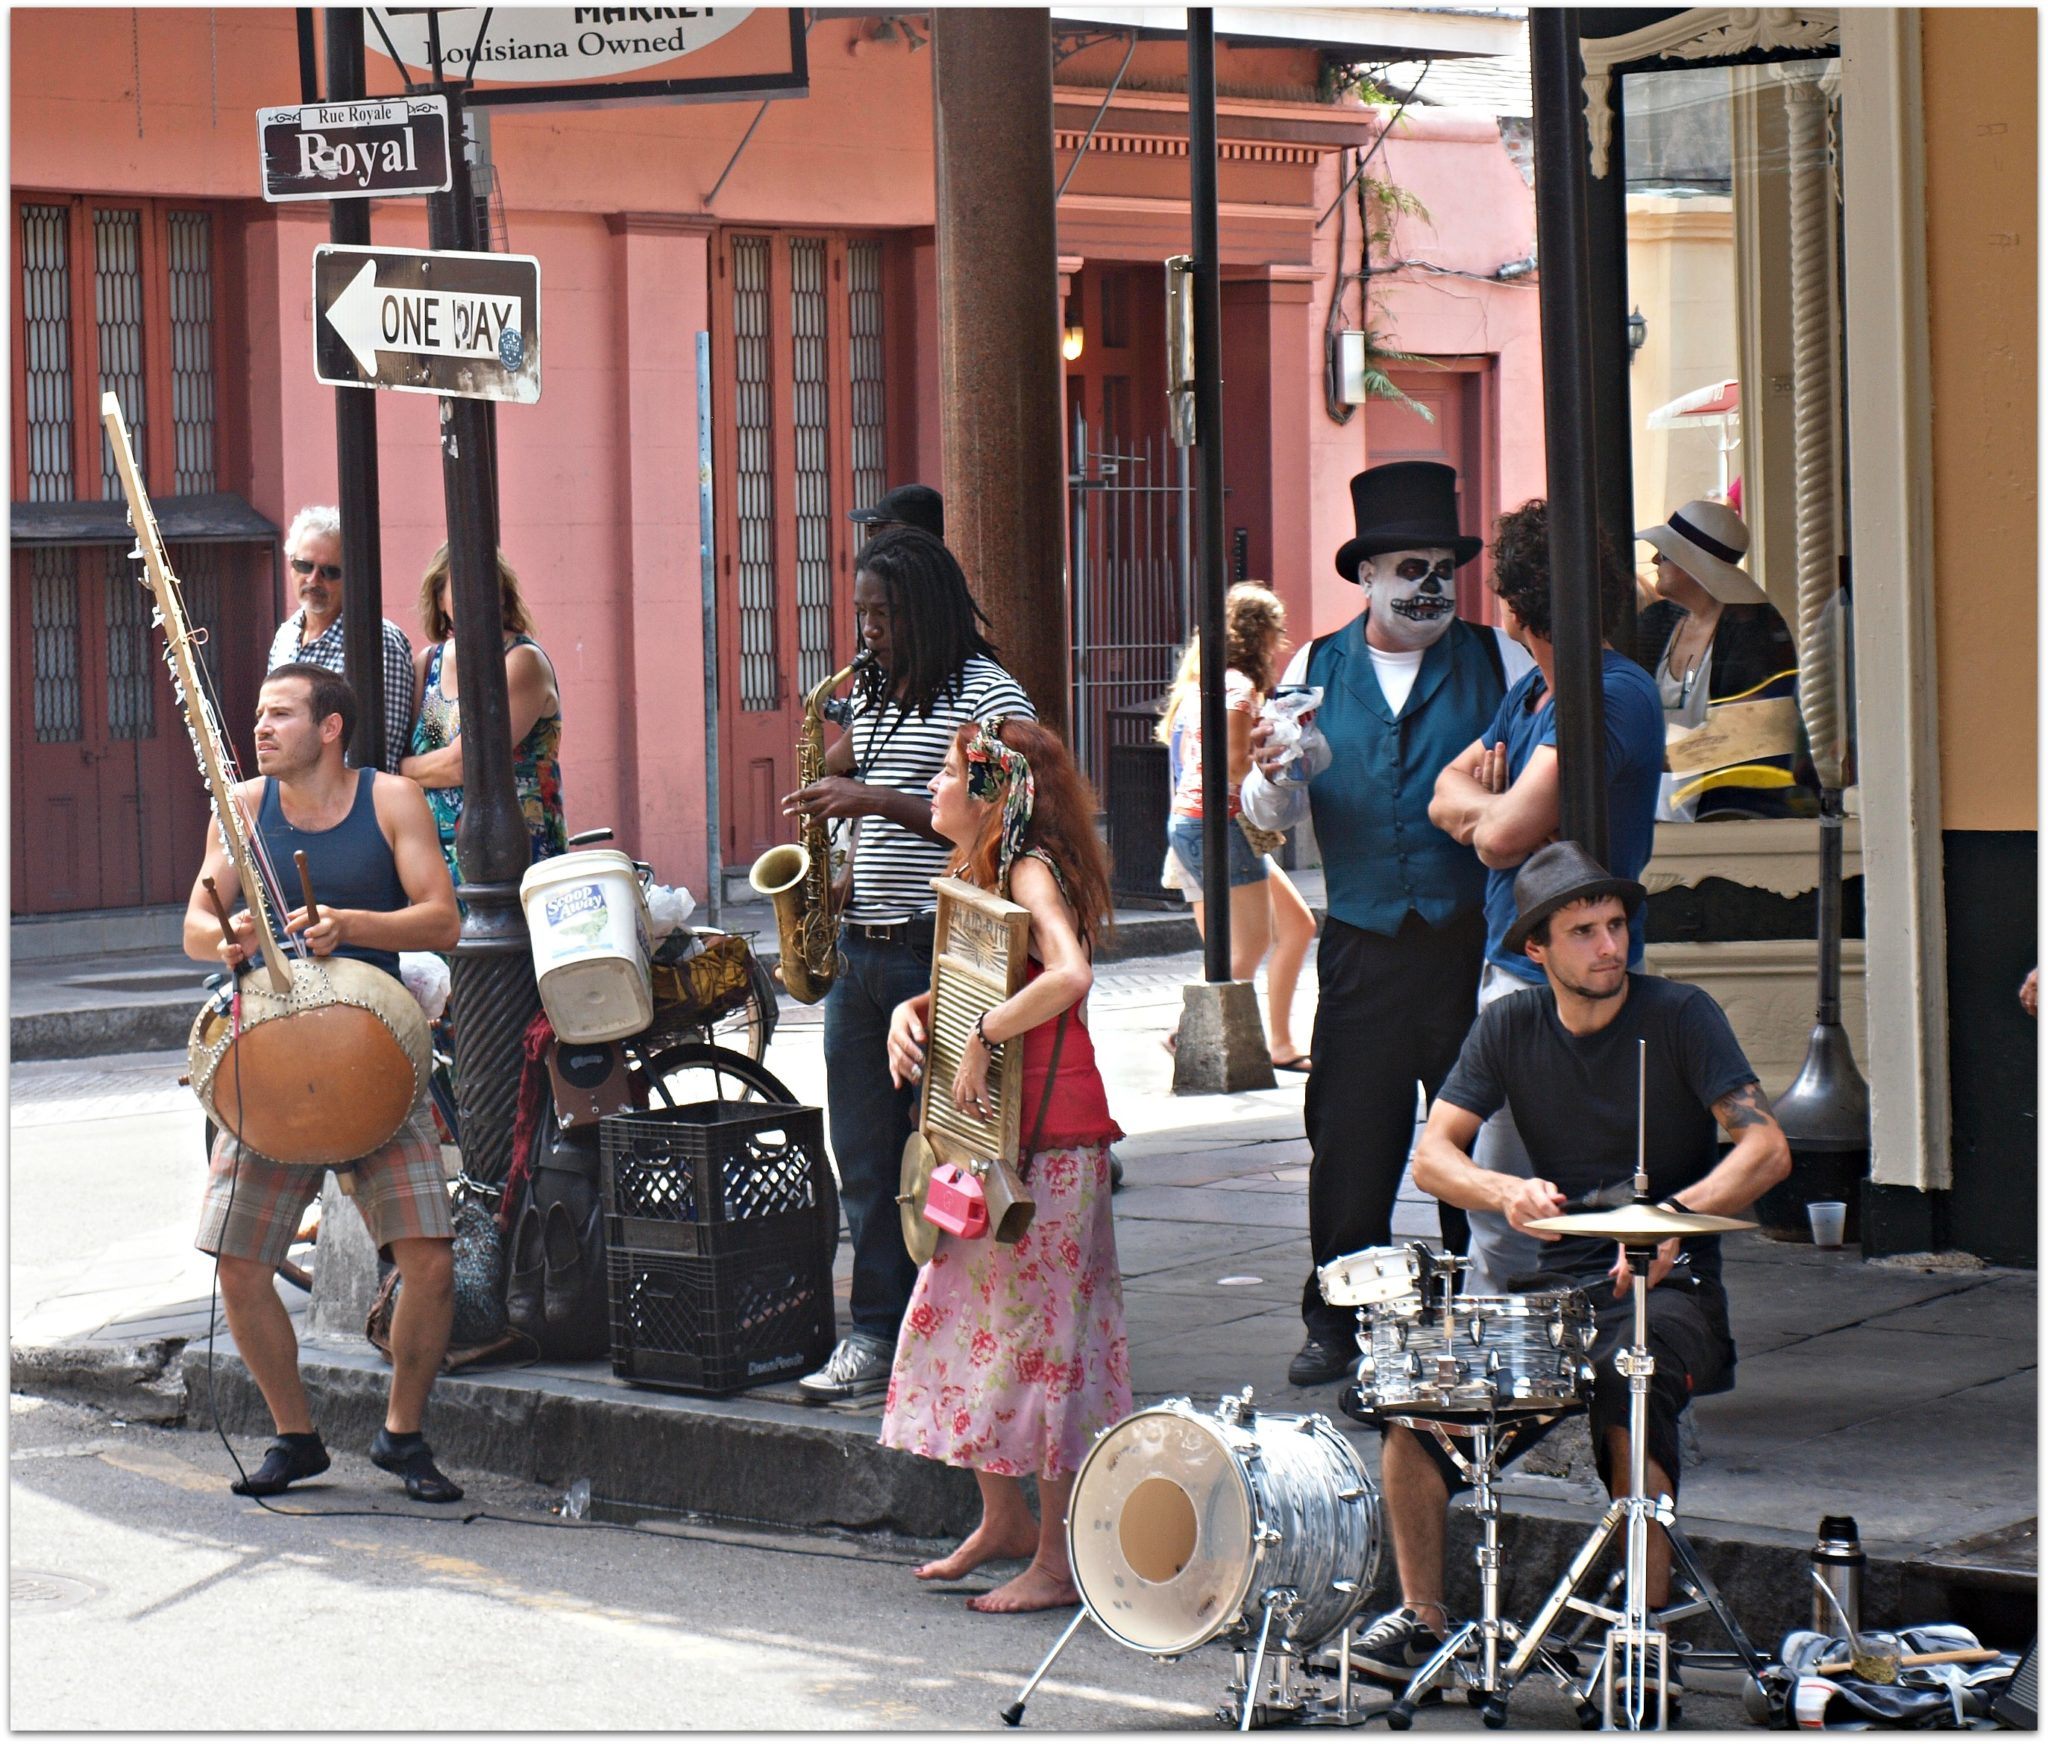 Street Music on Royal Street